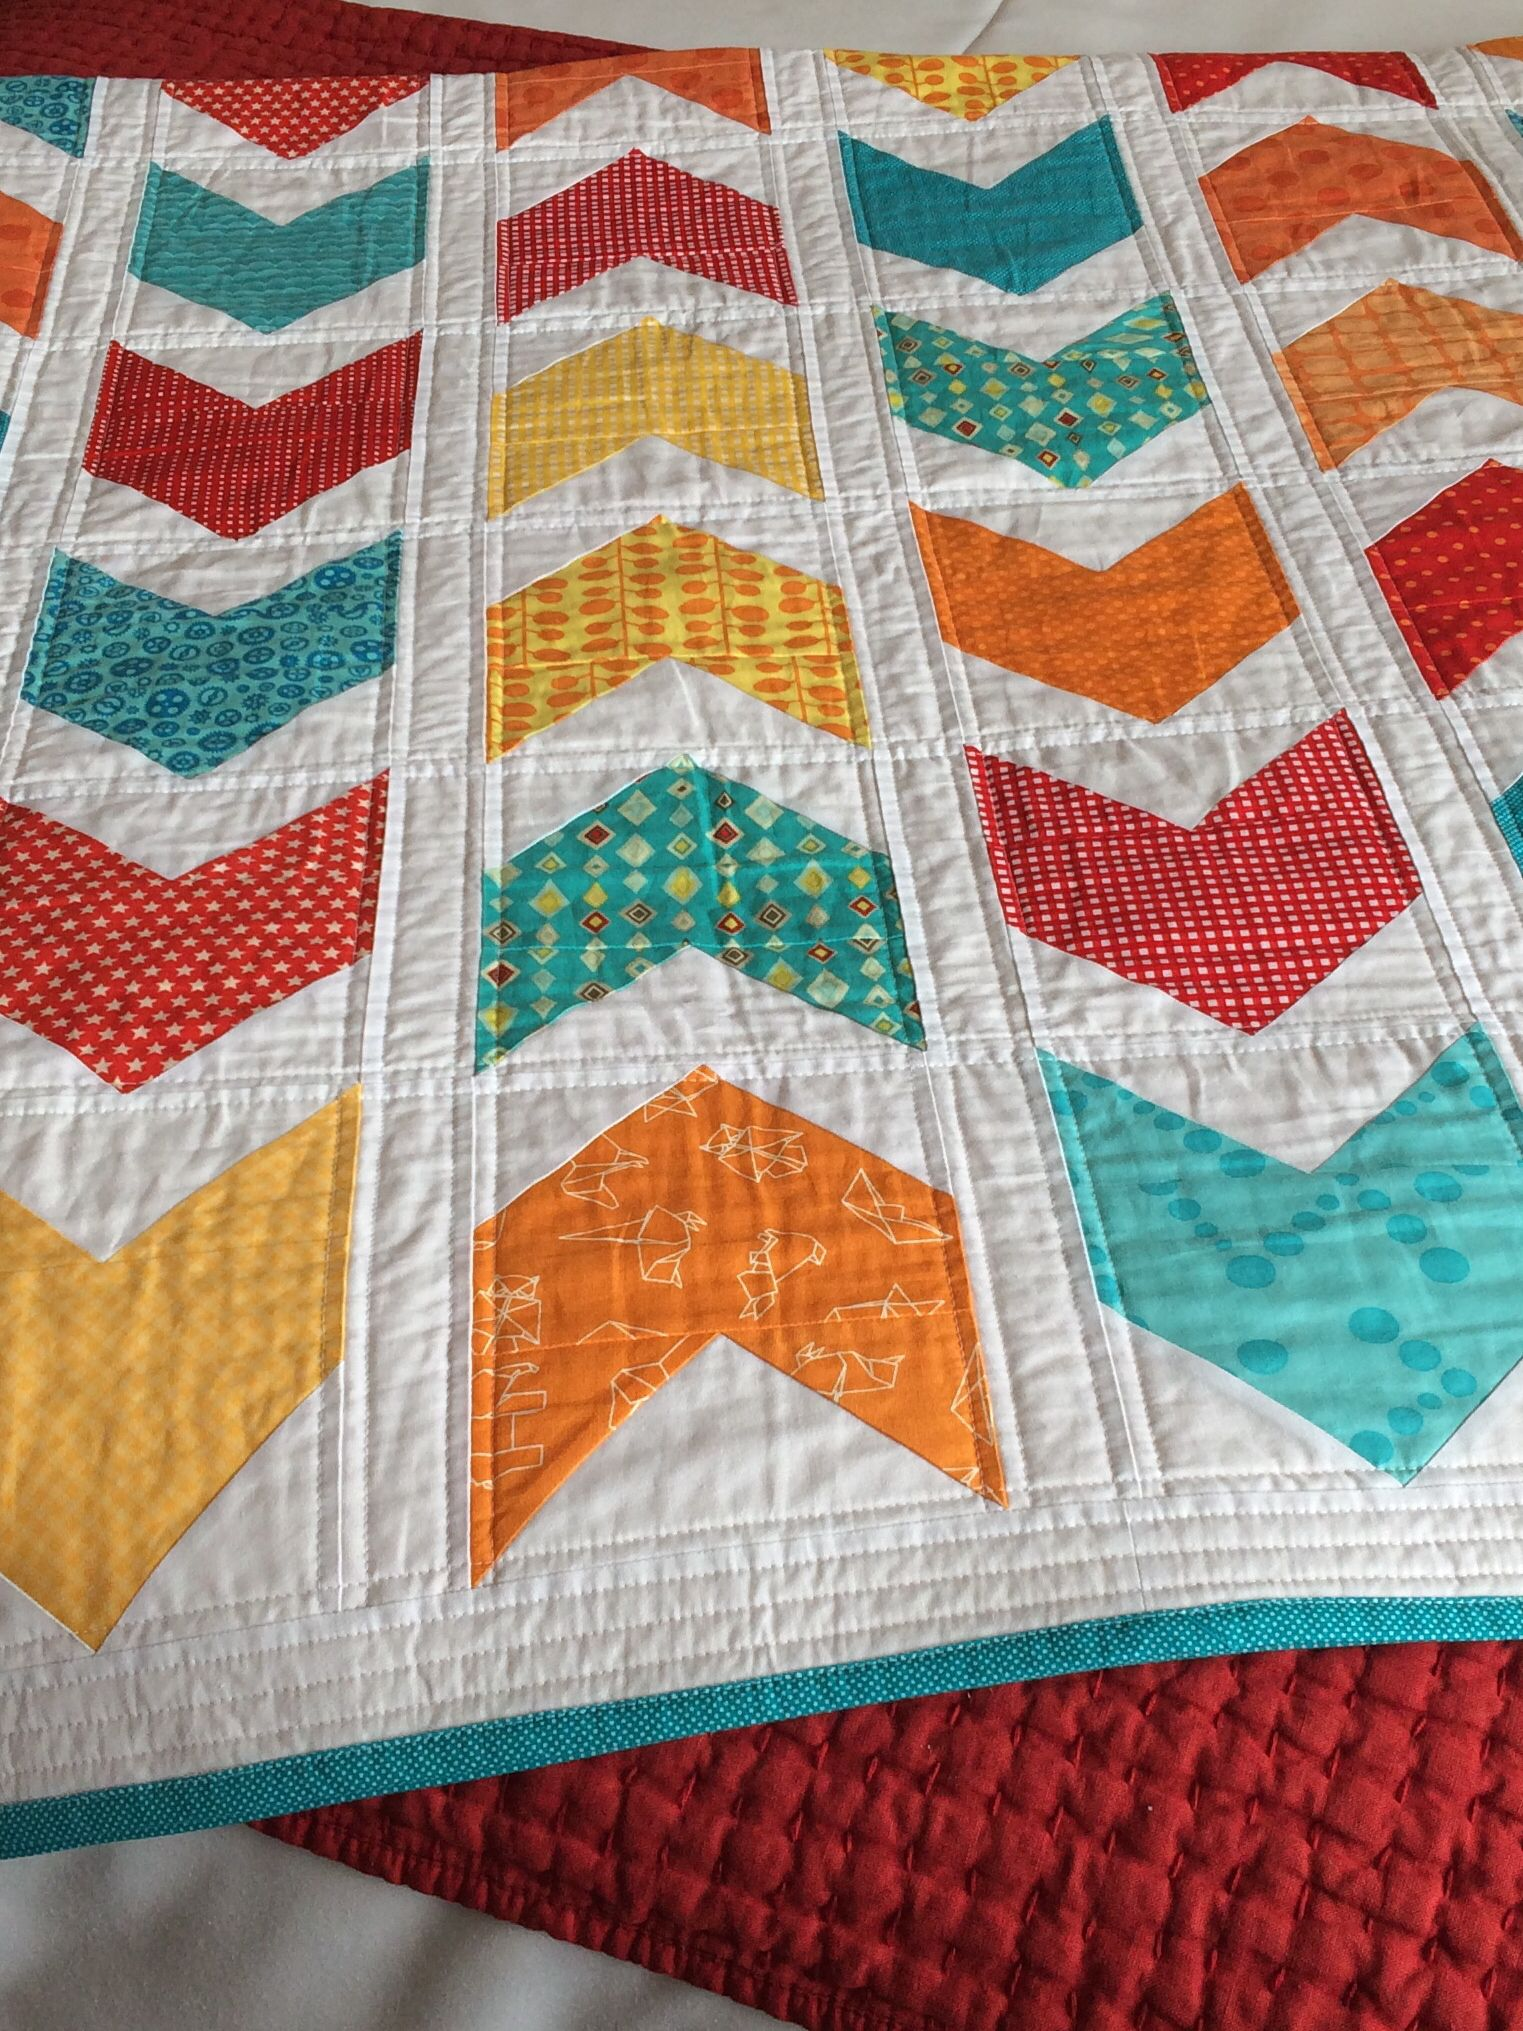 Cluck Cluck Sew A Turquoise Orange Blue And Red Quilt Modern With Moda Origami Fabric Fabric Origami Quilts Red Quilts